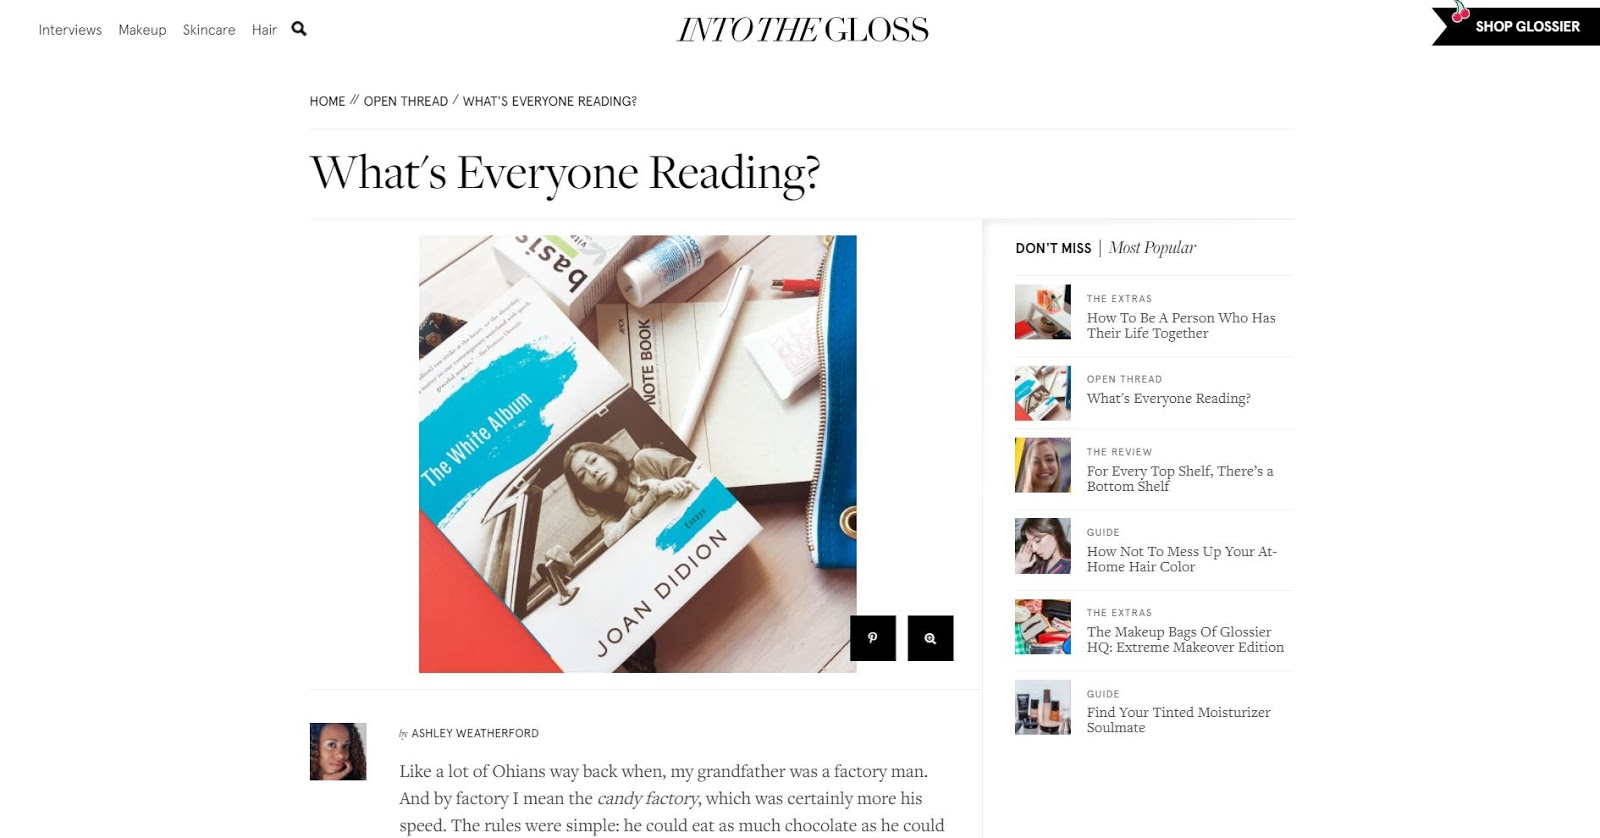 Source: https://intothegloss.com/2020/03/stay-at-home-books-reading-list/